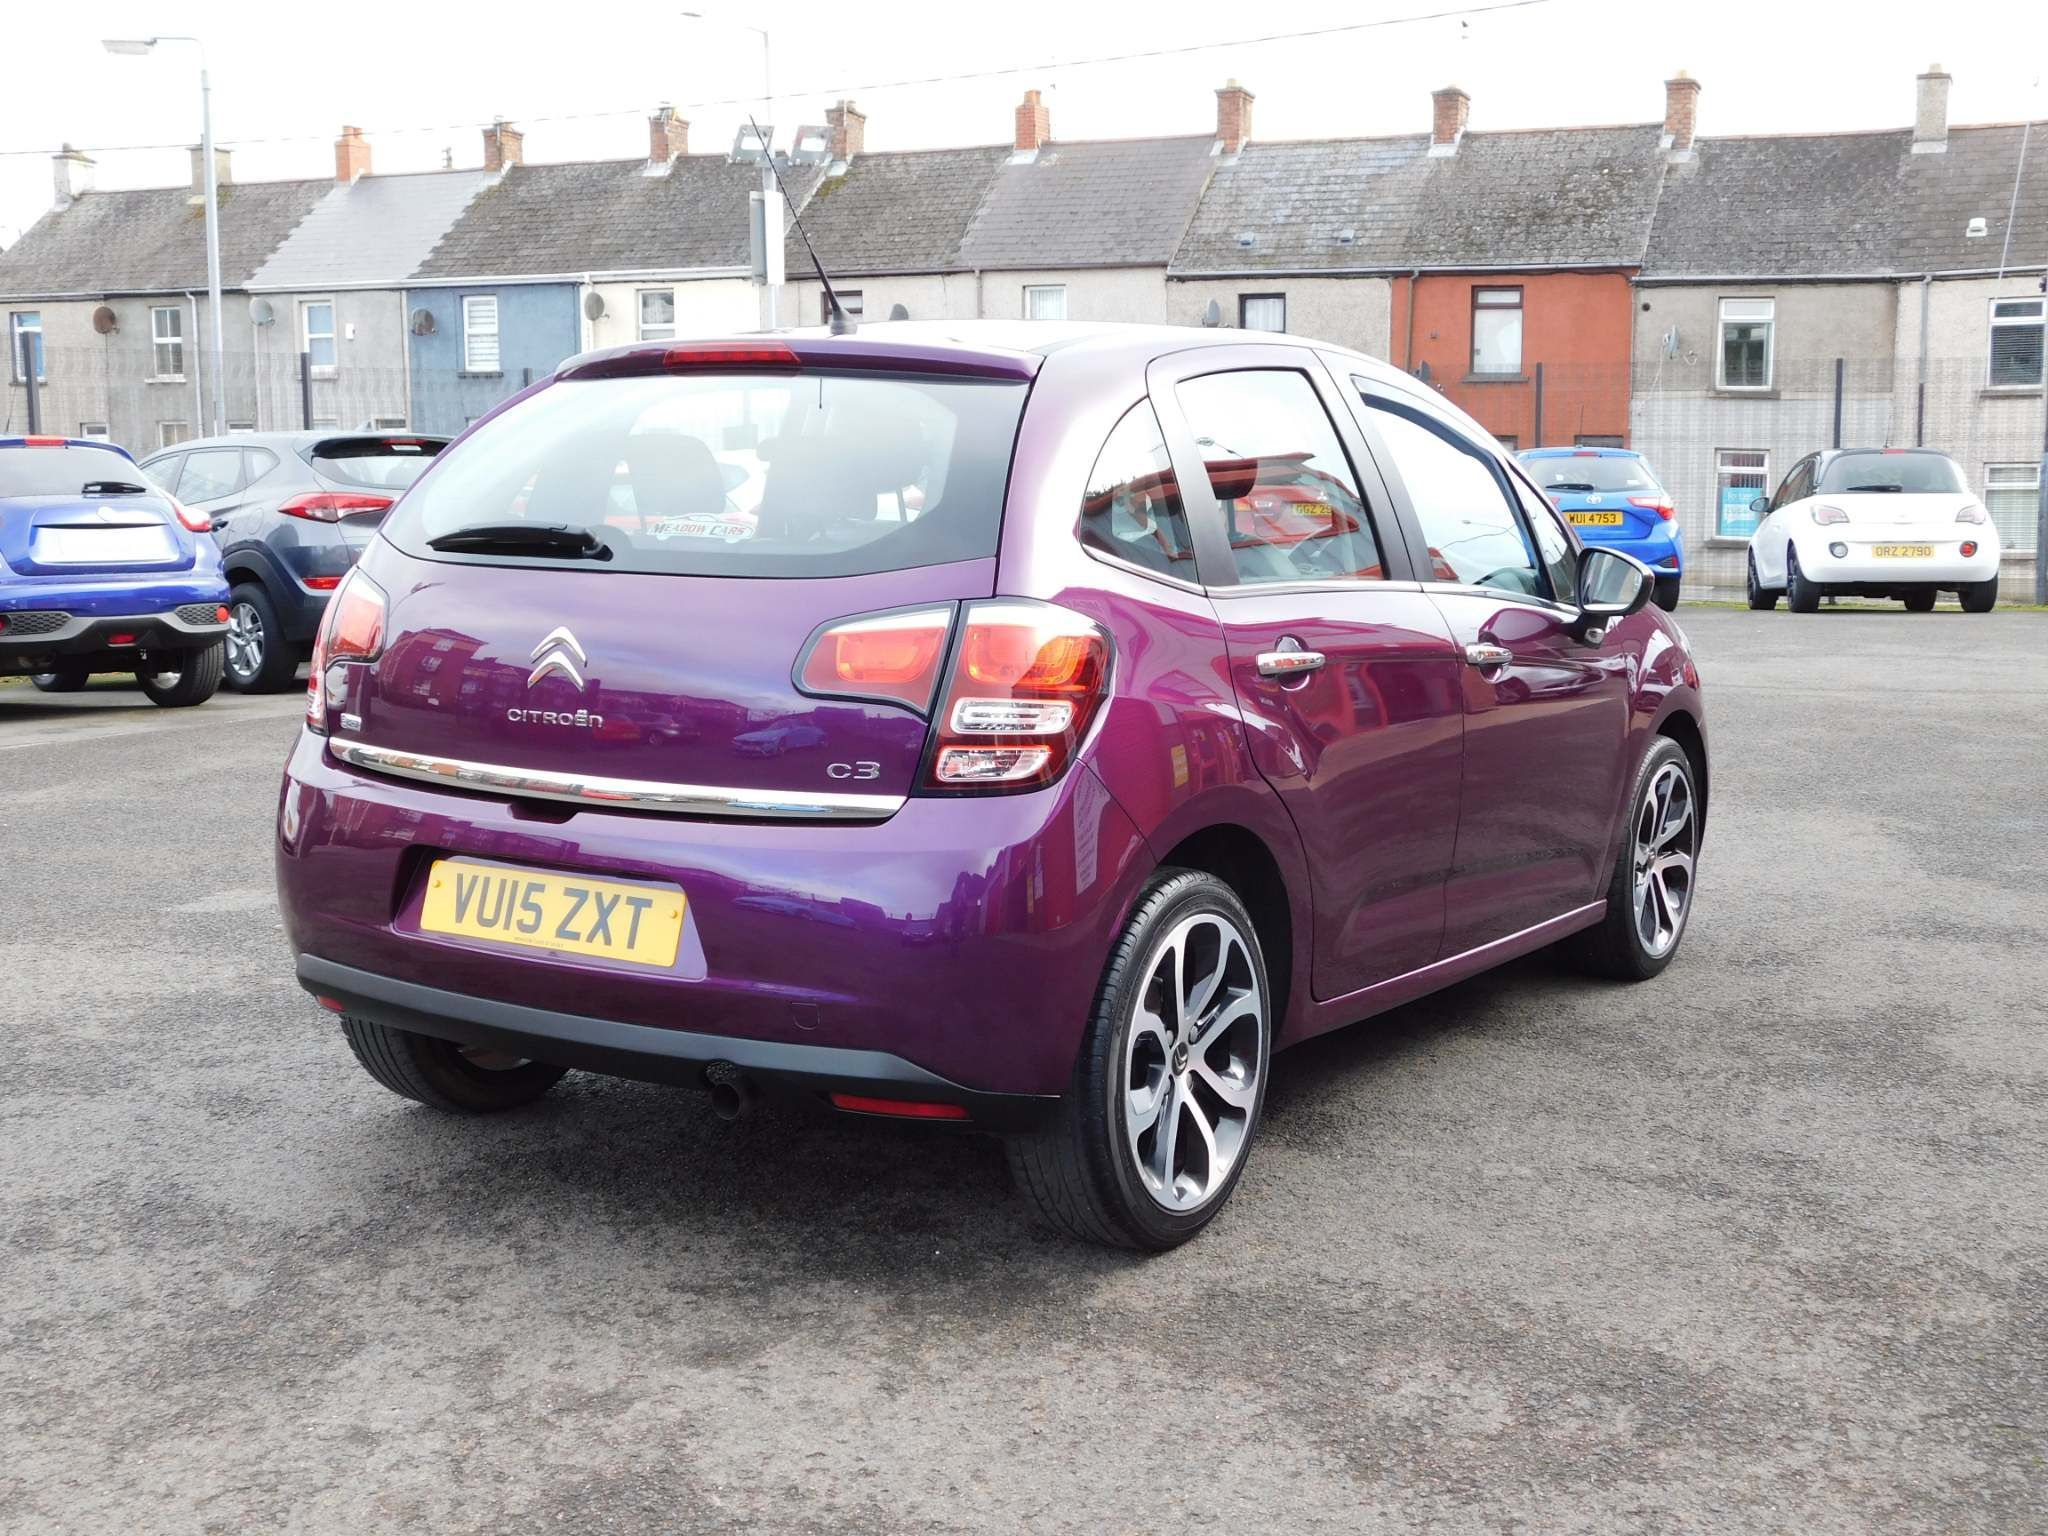 2015 CITROEN C3 1.6 e-HDi Airdream Selection Diesel Manual just arrived – Meadow Cars Carrickfergus full